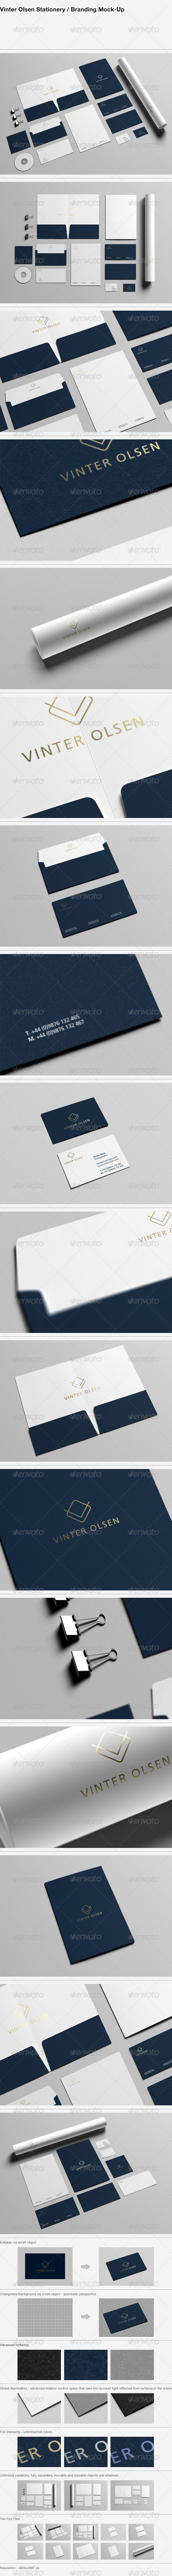 GraphicRiver Stationery Branding Mock-Up Vinter Olsen 7385322